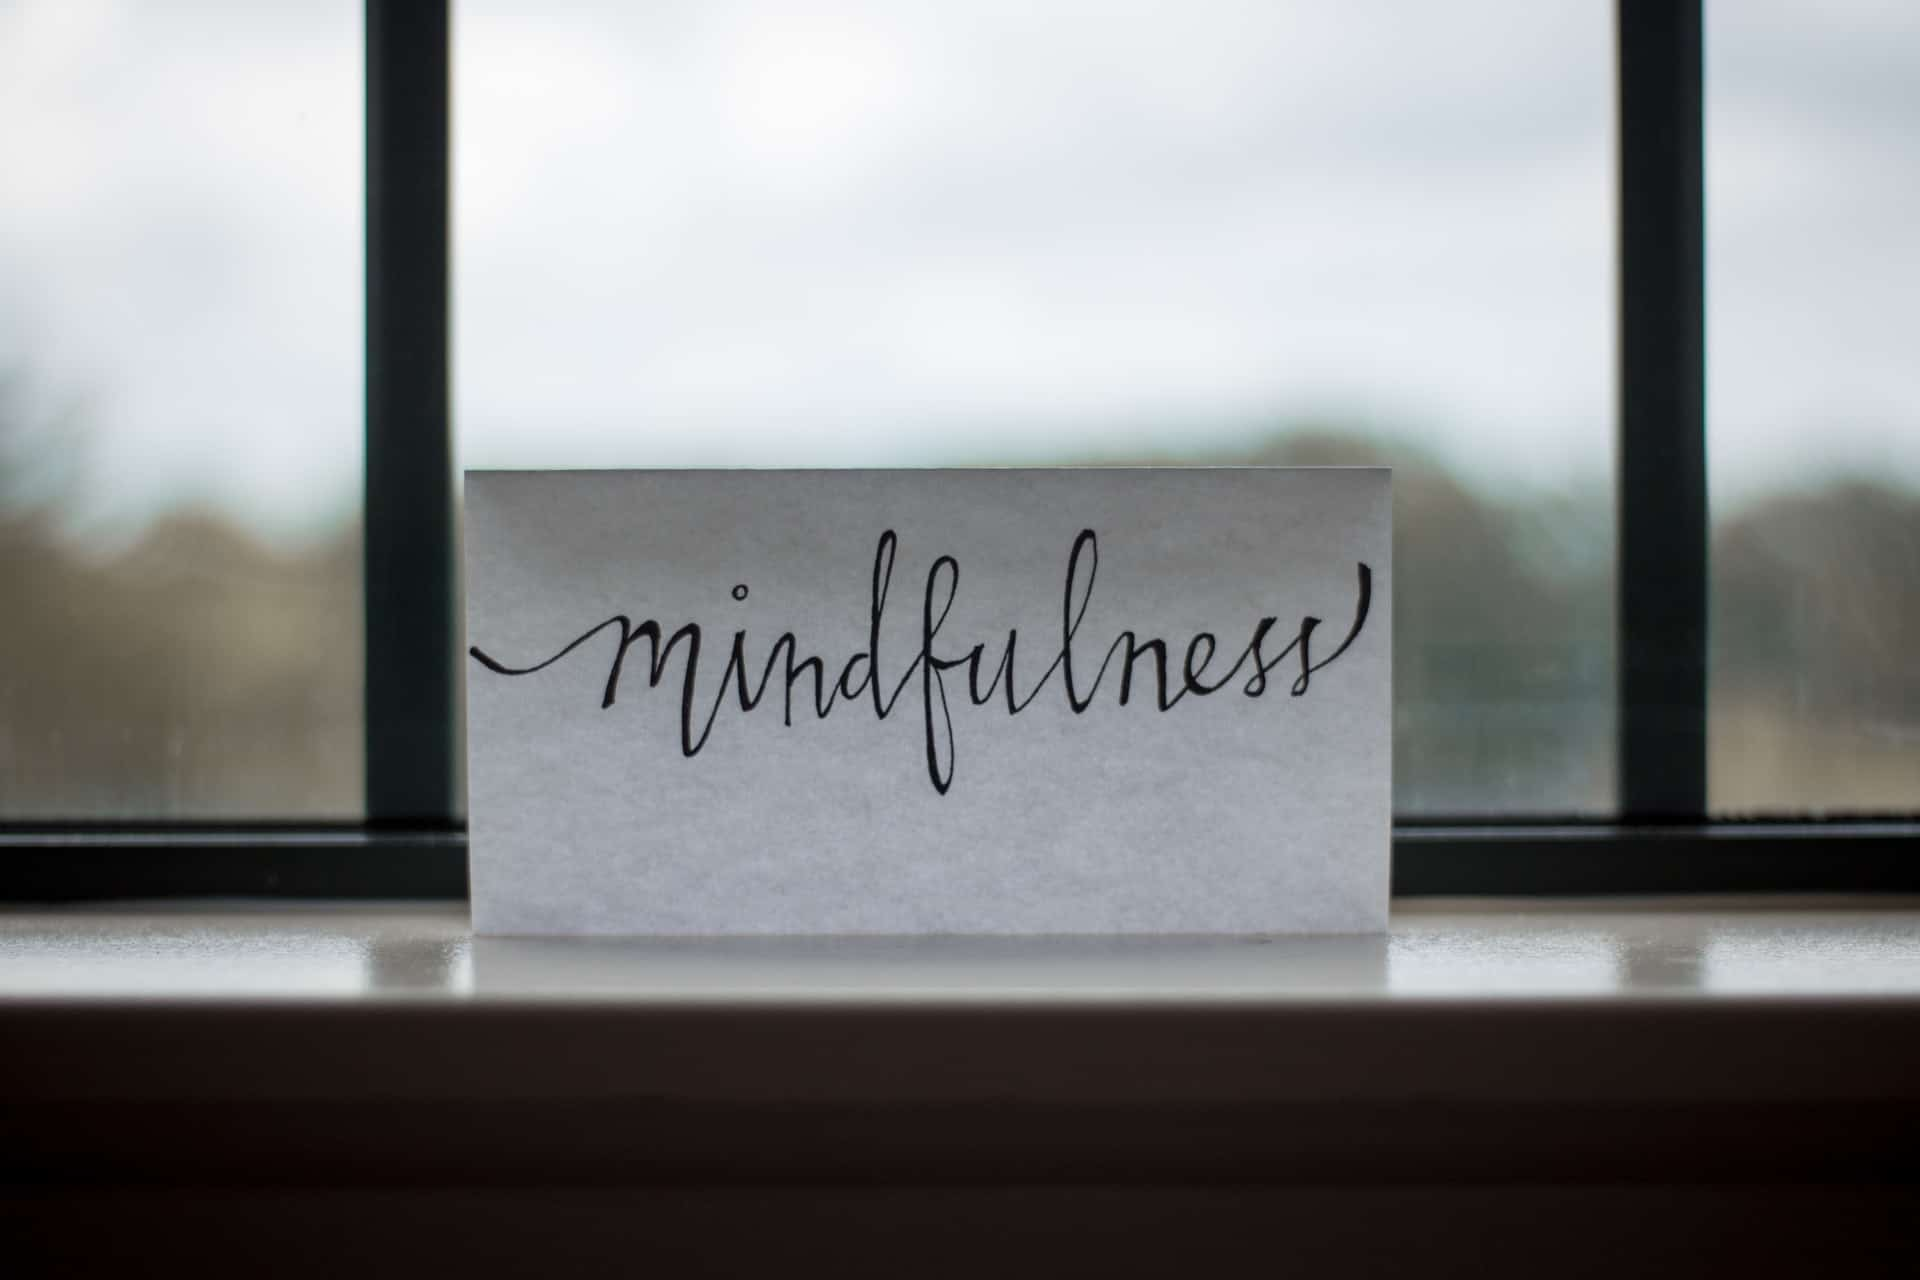 Mindfulness is an important part of recovery